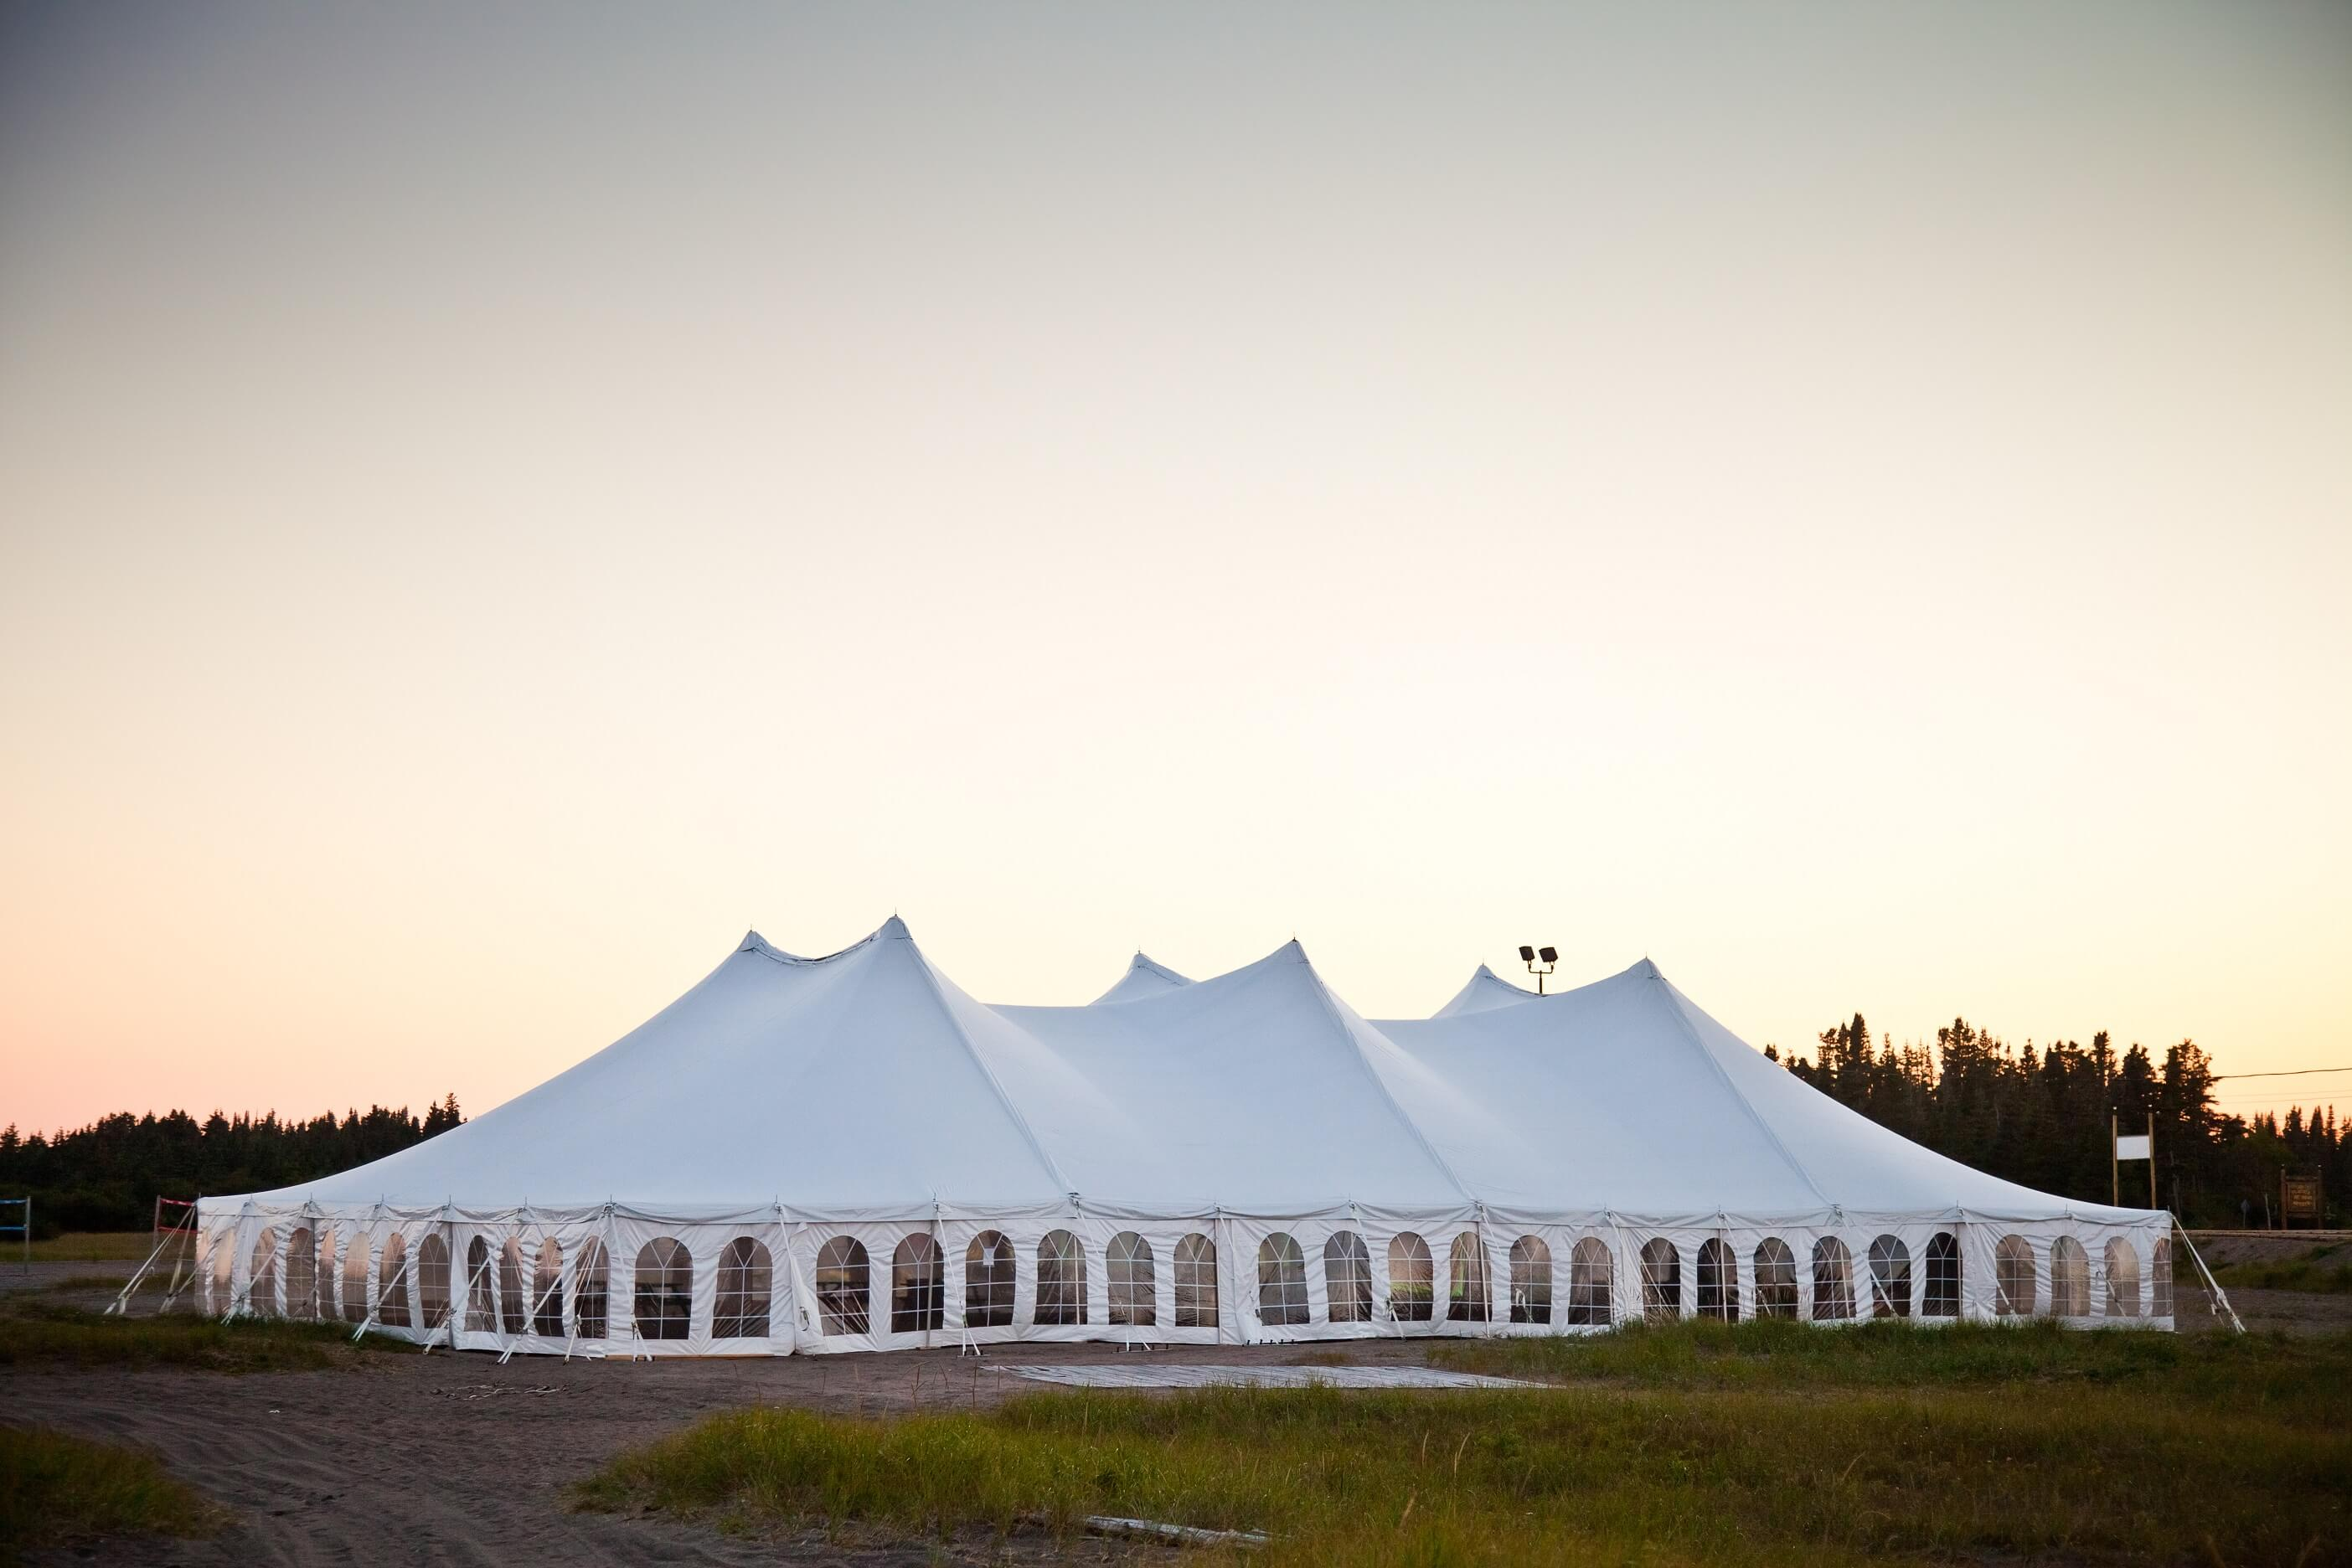 a-party-or-event-white-tent